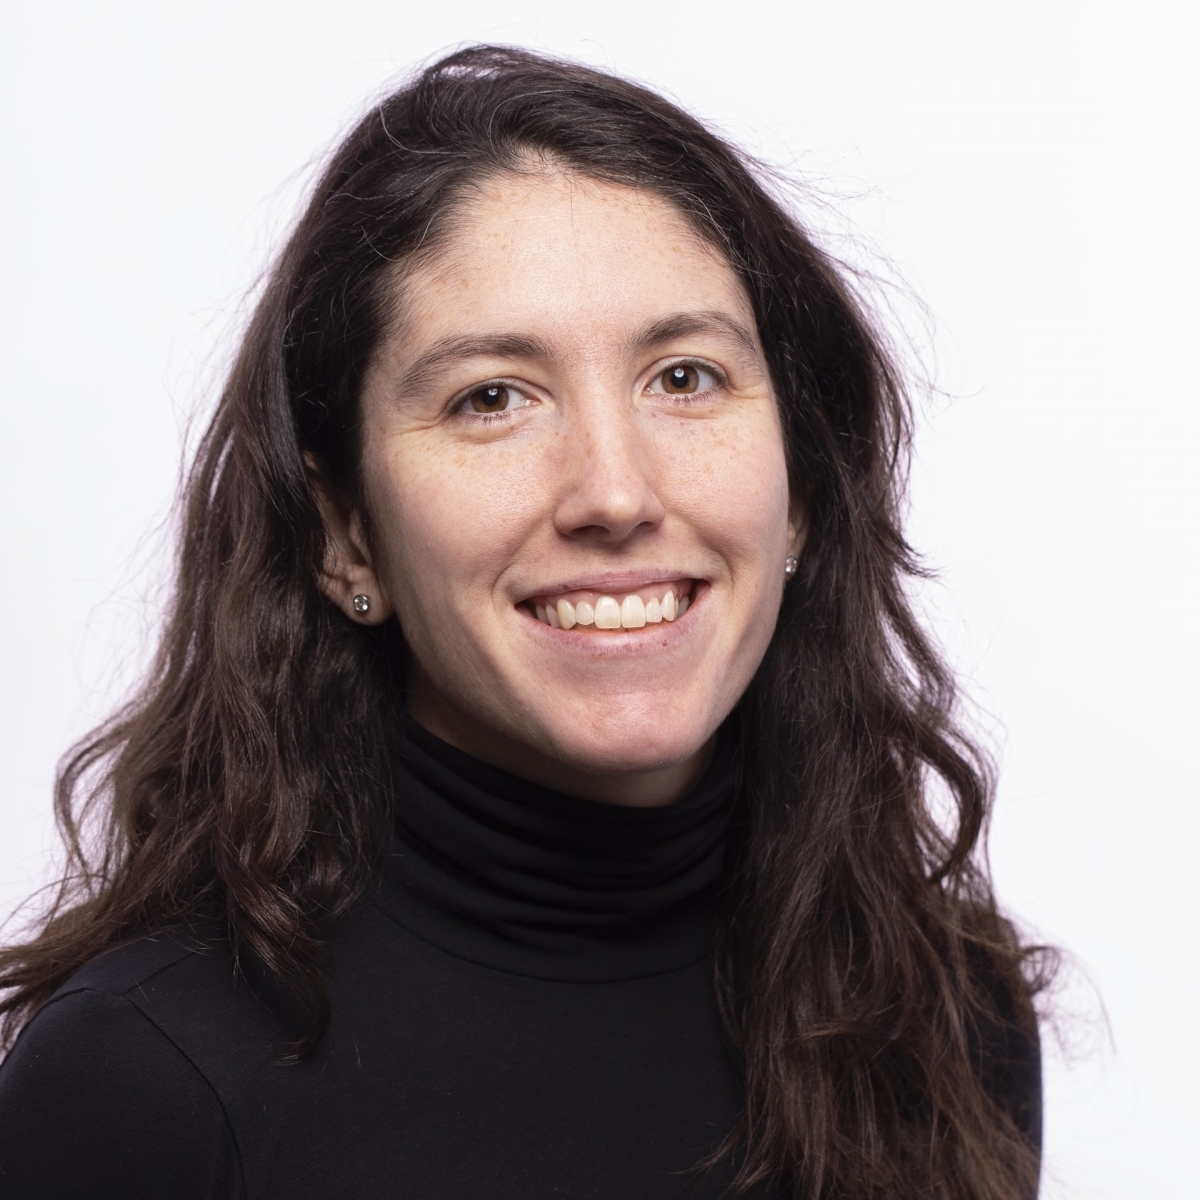 UMass Assistant Professor Maryclare Griffin